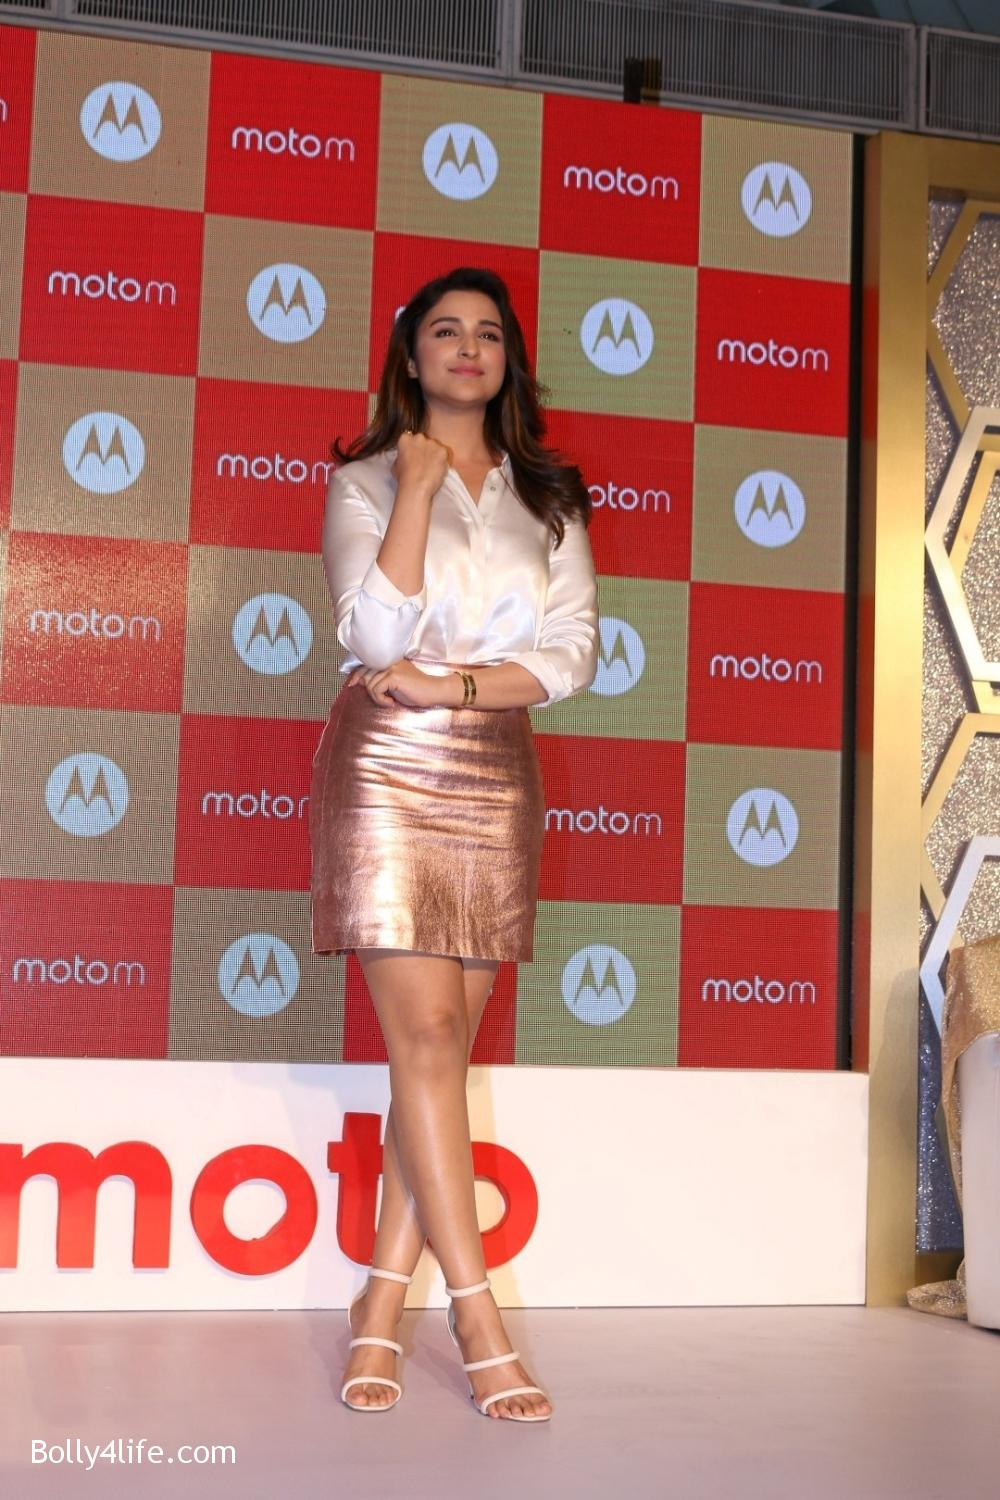 Parineeti-Chopra-launches-Motorola-Moto-M-5.jpg